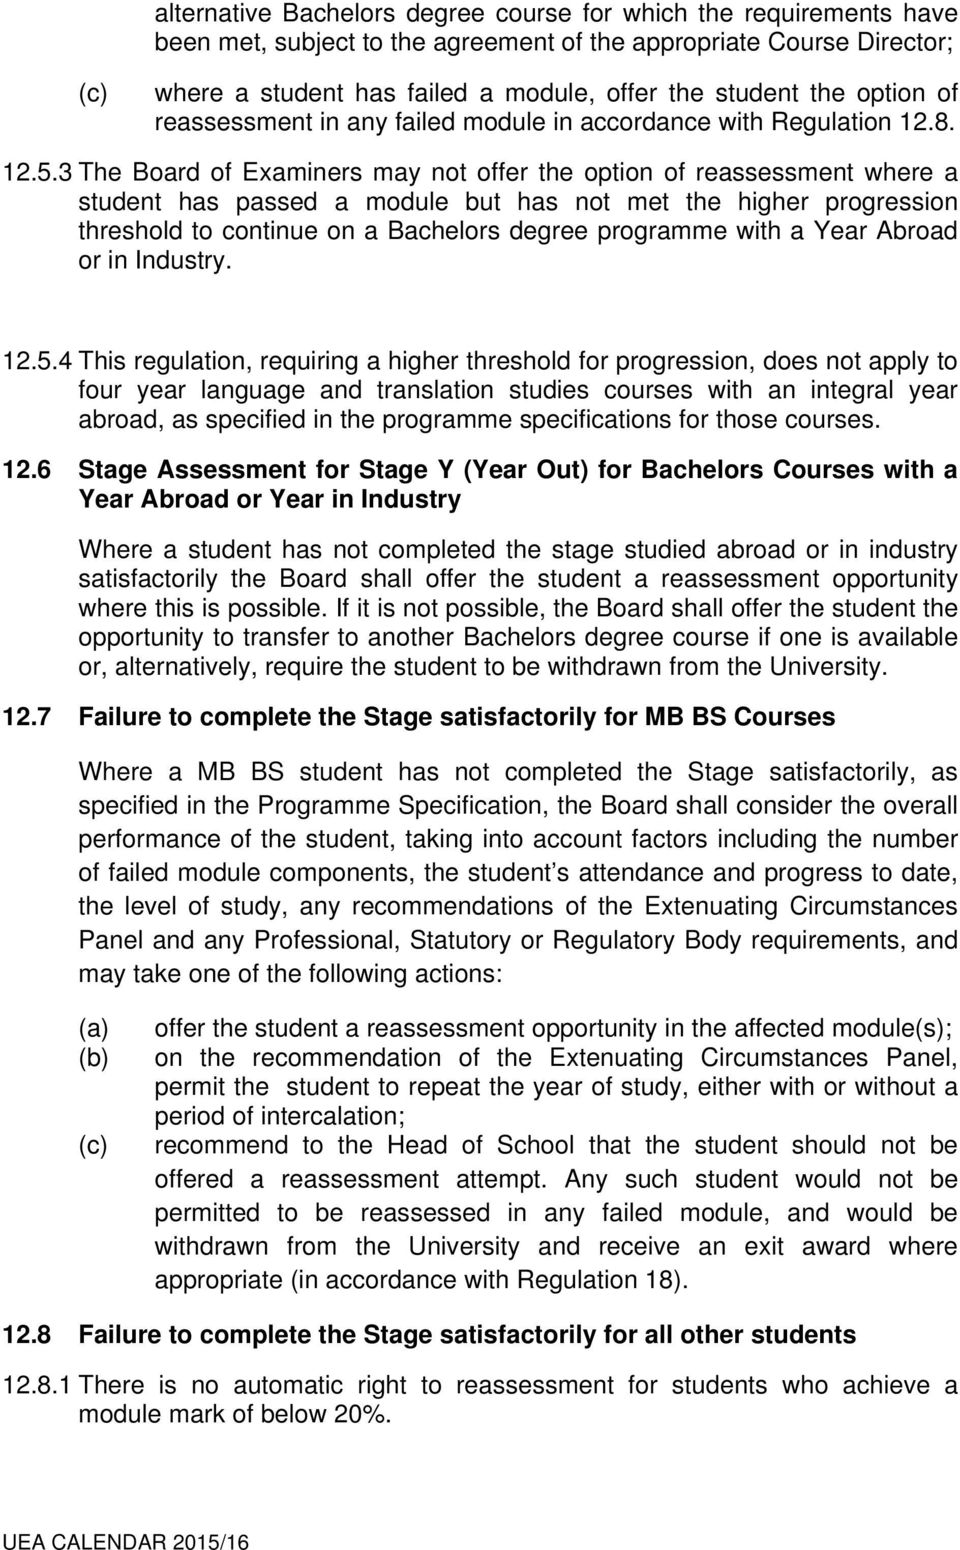 3 The Board of Examiners may not offer the option of reassessment where a student has passed a module but has not met the higher progression threshold to continue on a Bachelors degree programme with